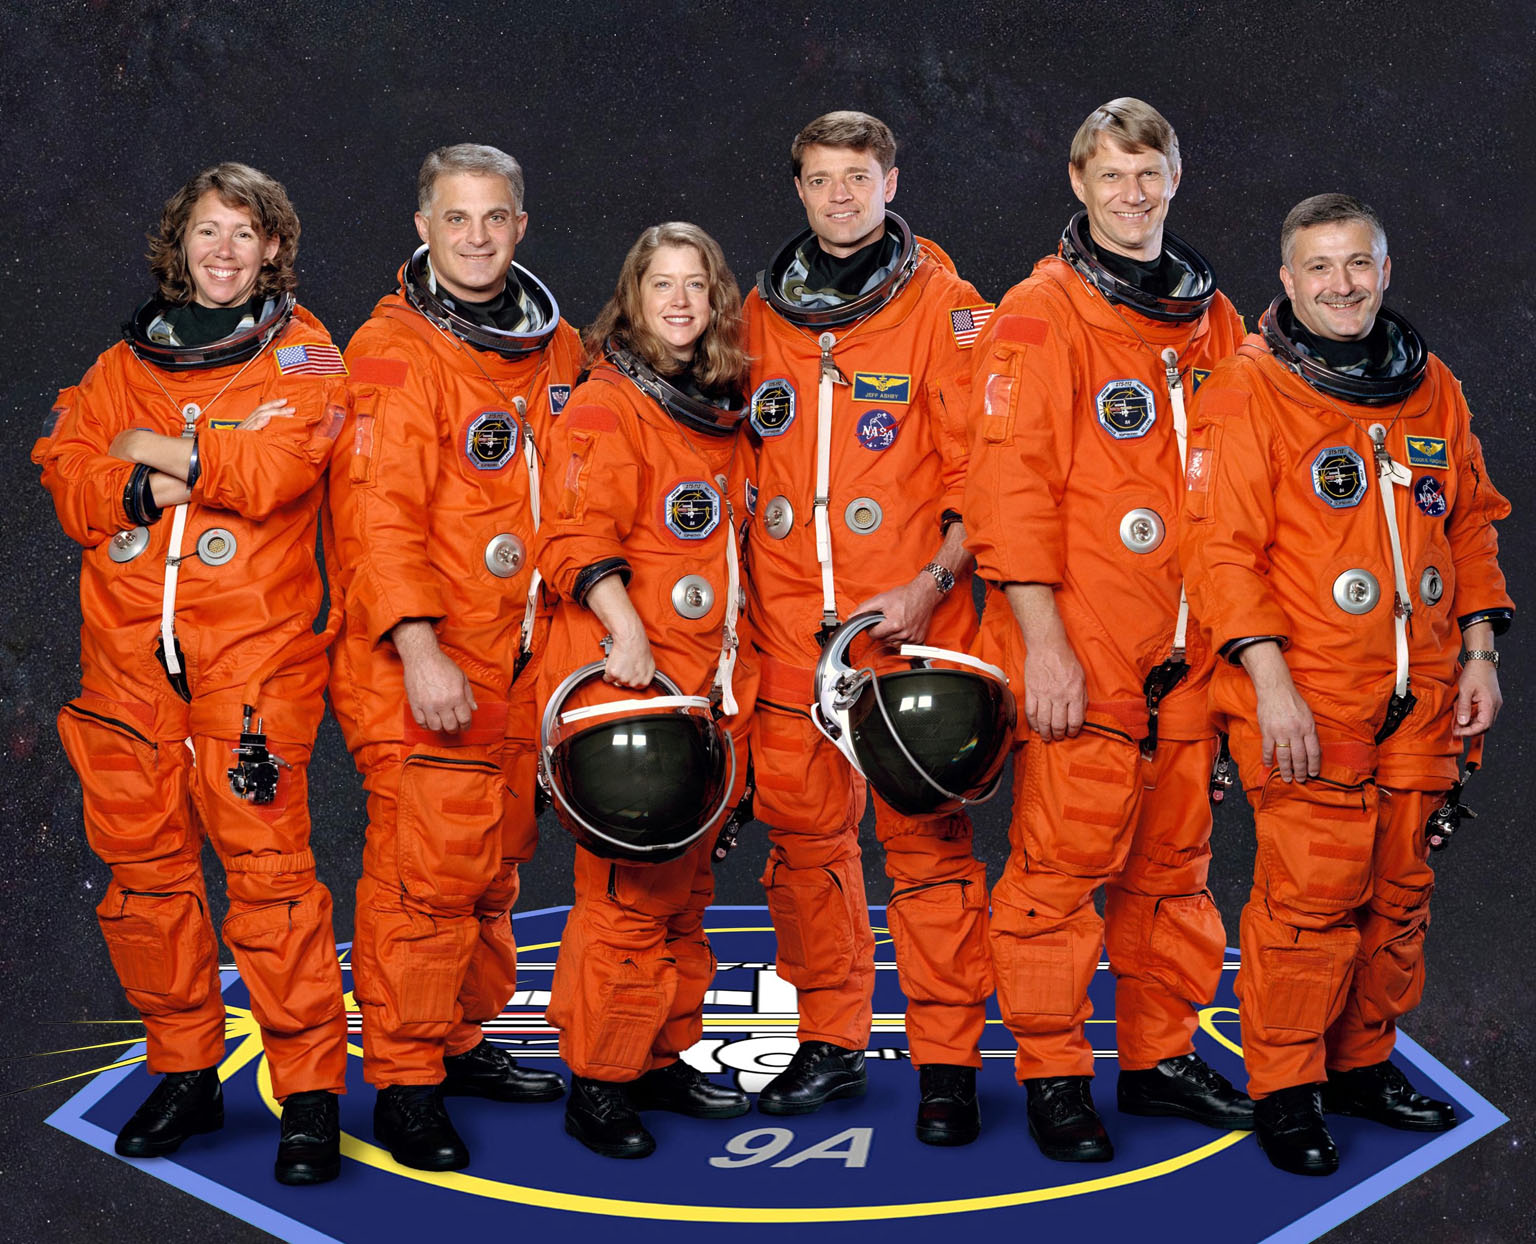 JOHNSON SPACE CENTER, HOUSTON, TEXAS -- (STS112-S-002) These five astronauts and cosmonaut take a break from training to pose for the STS-112 crew portrait. Astronauts Pamela A. Melroy and Jeffrey S. Ashby, pilot and commander respectively, are in the center of the photo. The mission specialists are from left to right, astronauts Sandra H. Magnus, David A. Wolf and Piers J. Sellers, and cosmonaut Fyodor Yurchikhin, who represents Rosaviakosmos.